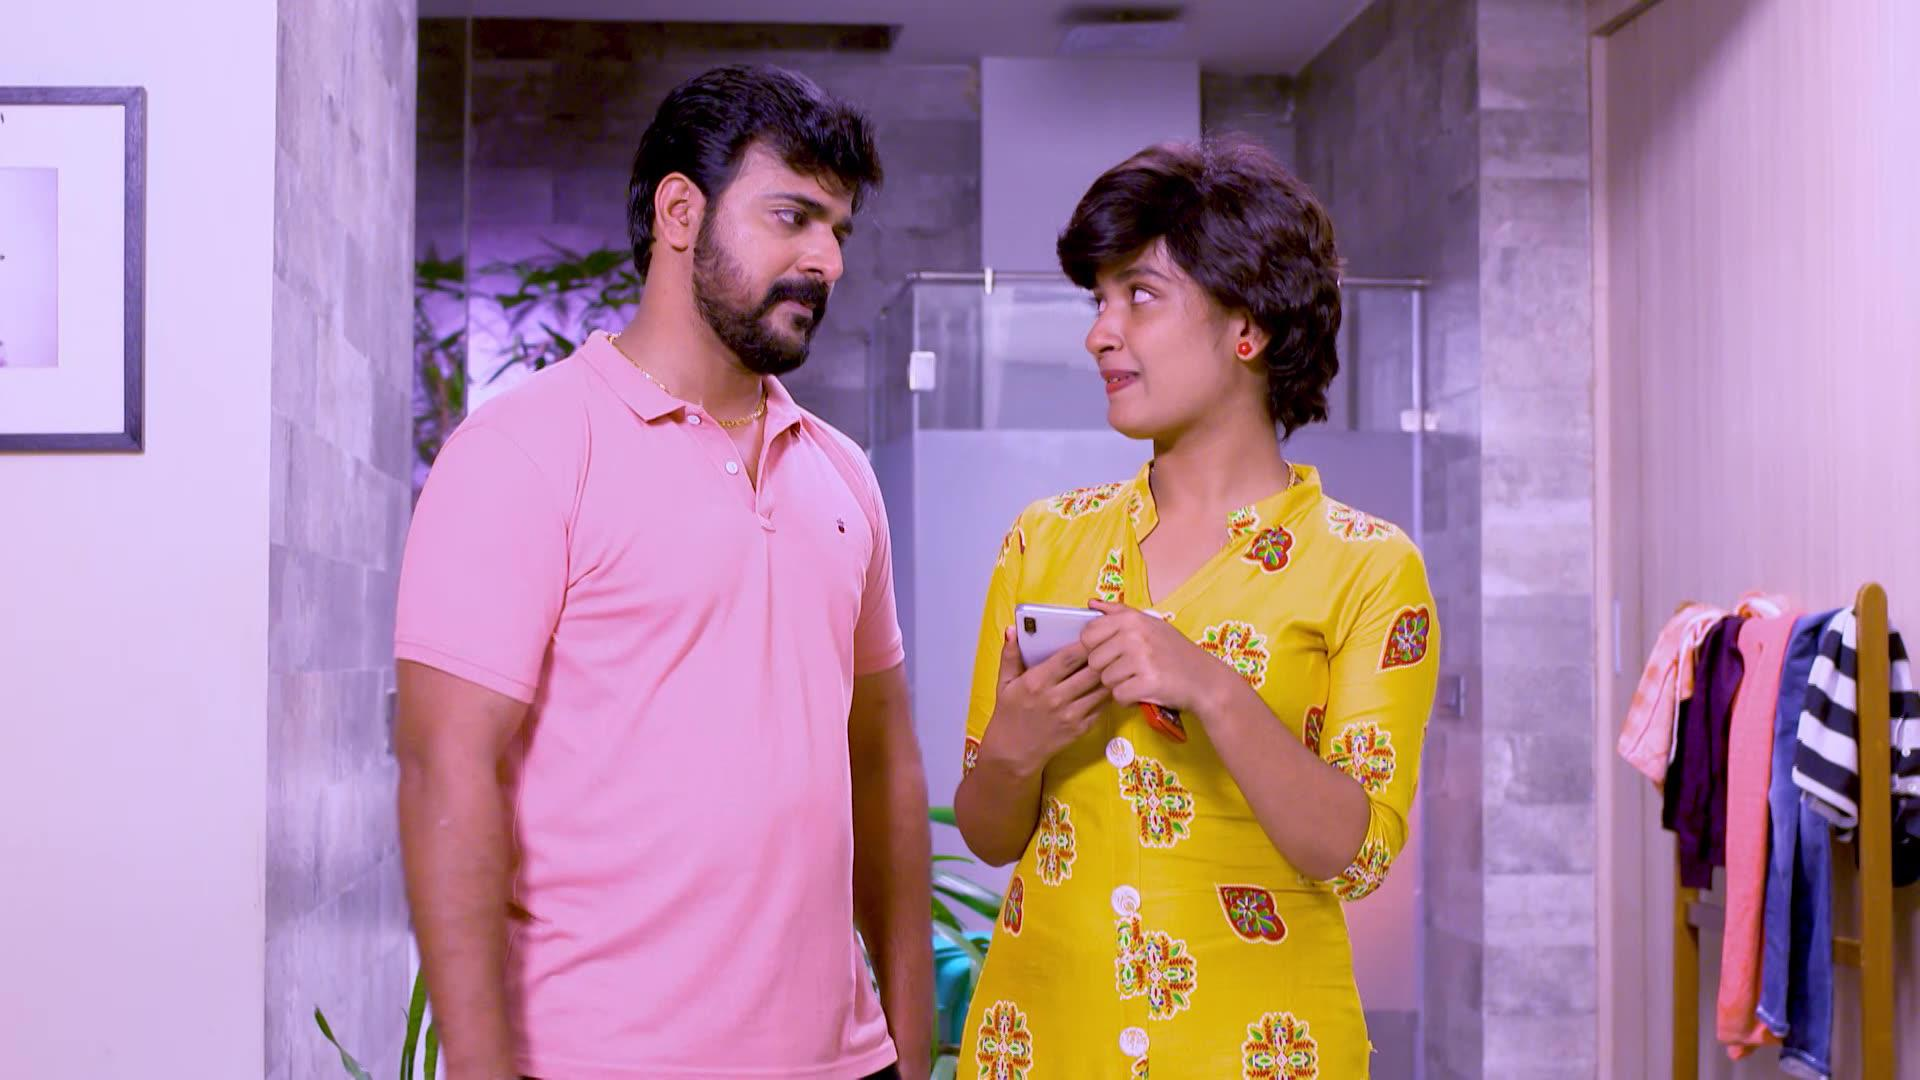 Sudhi gifts sathya